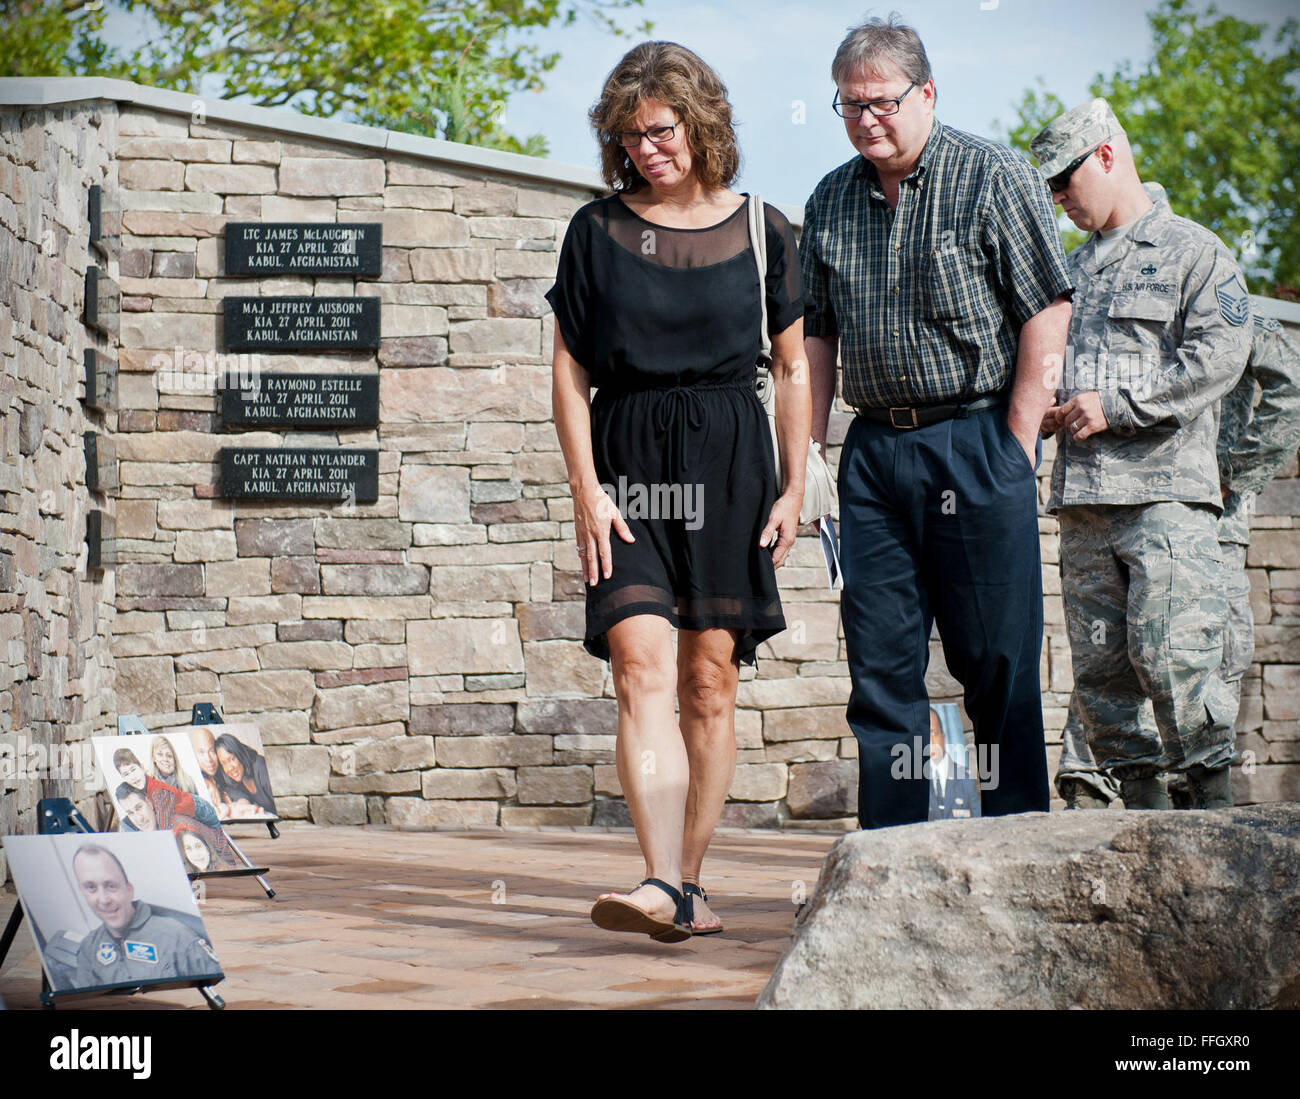 Family and friends look at plaques and photos of the nine fallen air advisors before the memorial dedication ceremony. - Stock Image